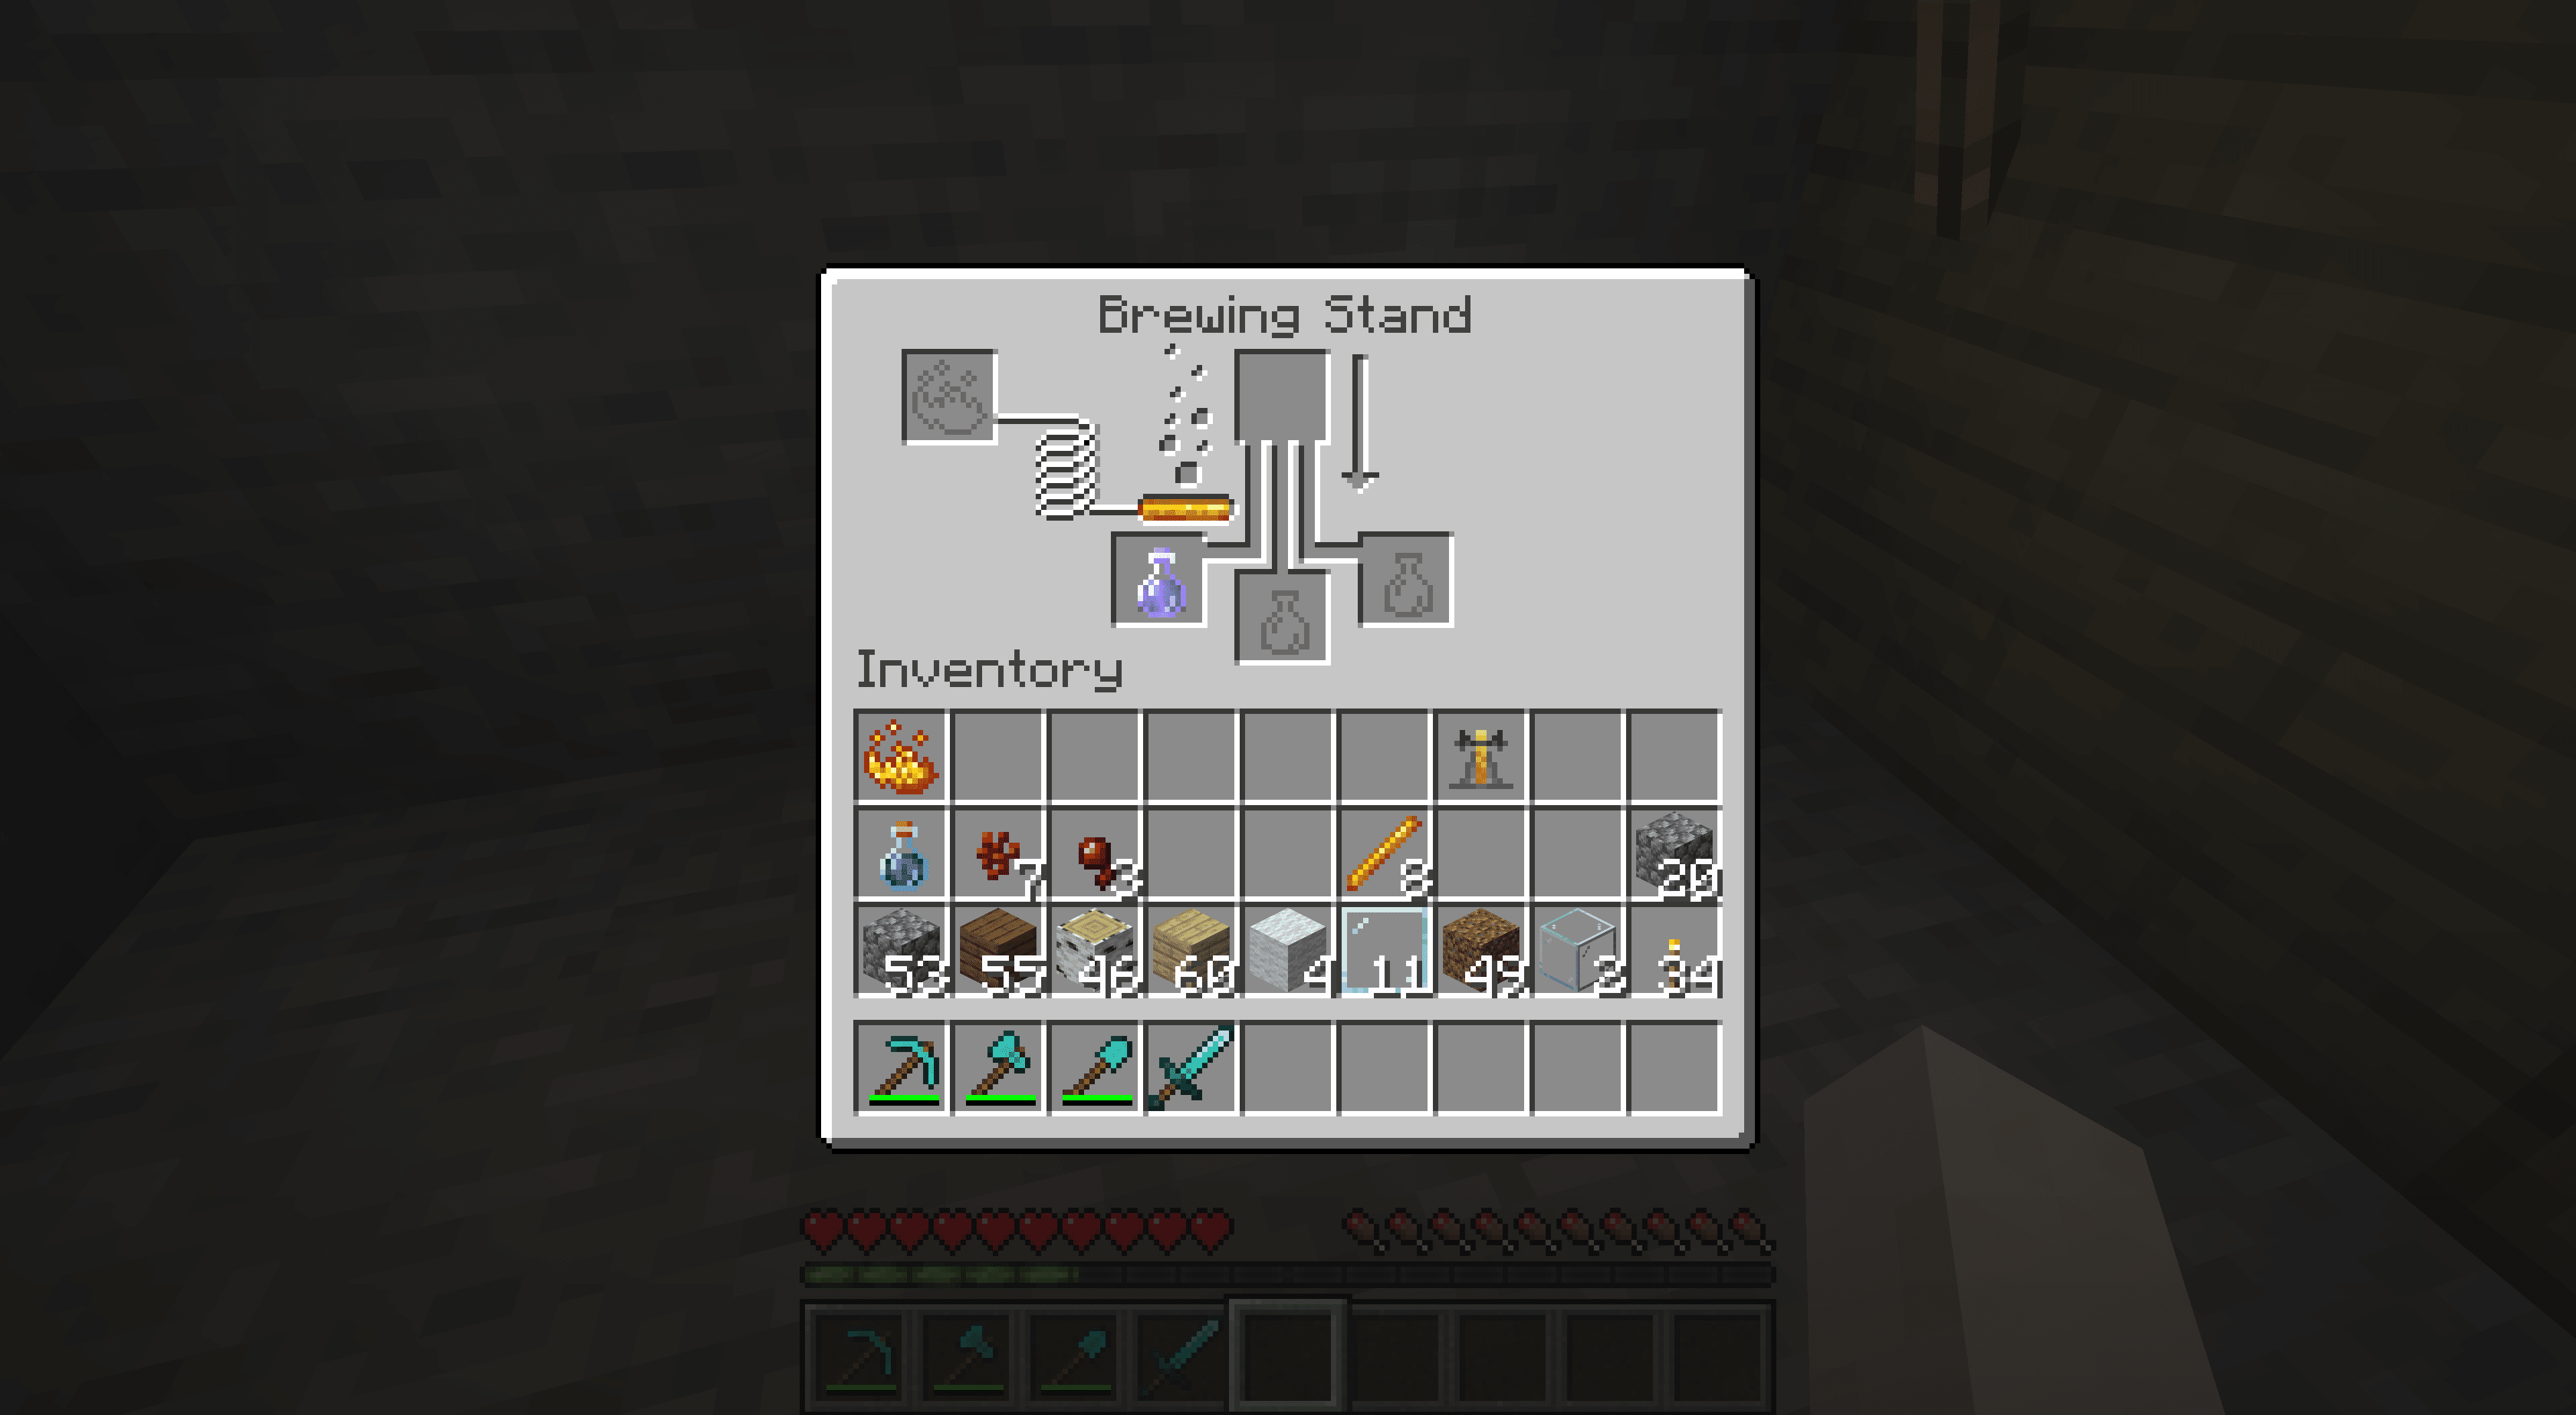 A poison potion in a brewing stand in Minecraft.